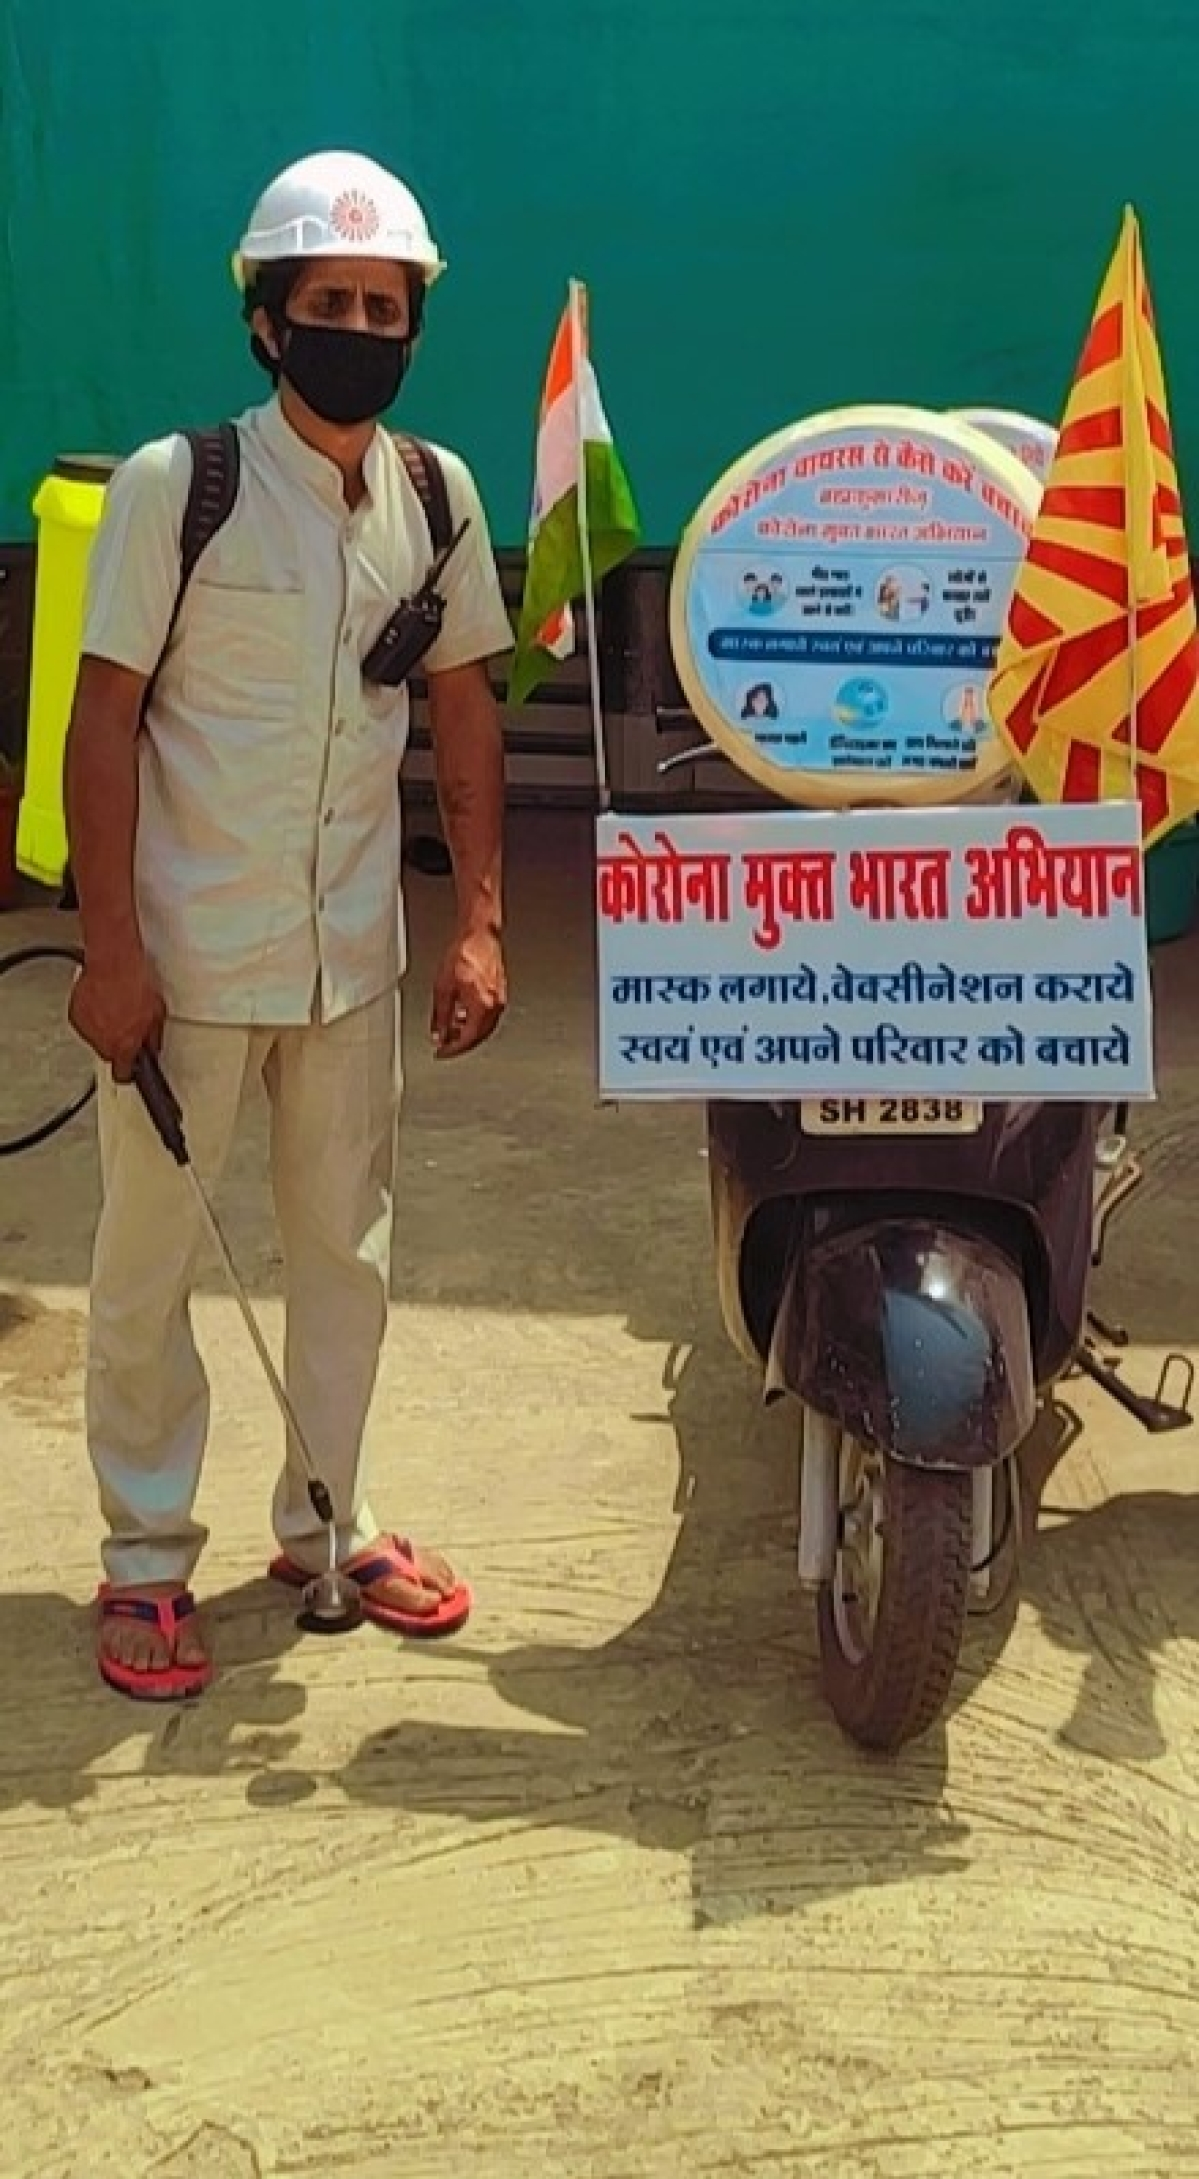 Bhopal: One-man army spreads message on corona protection protocols